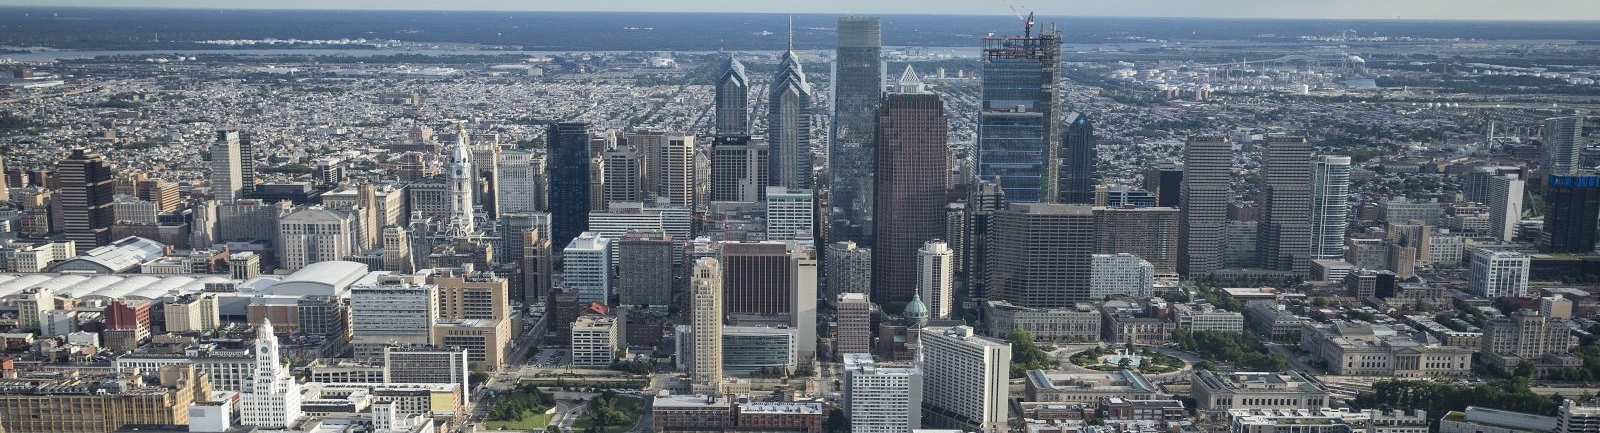 City of Philadelphia from aerial view